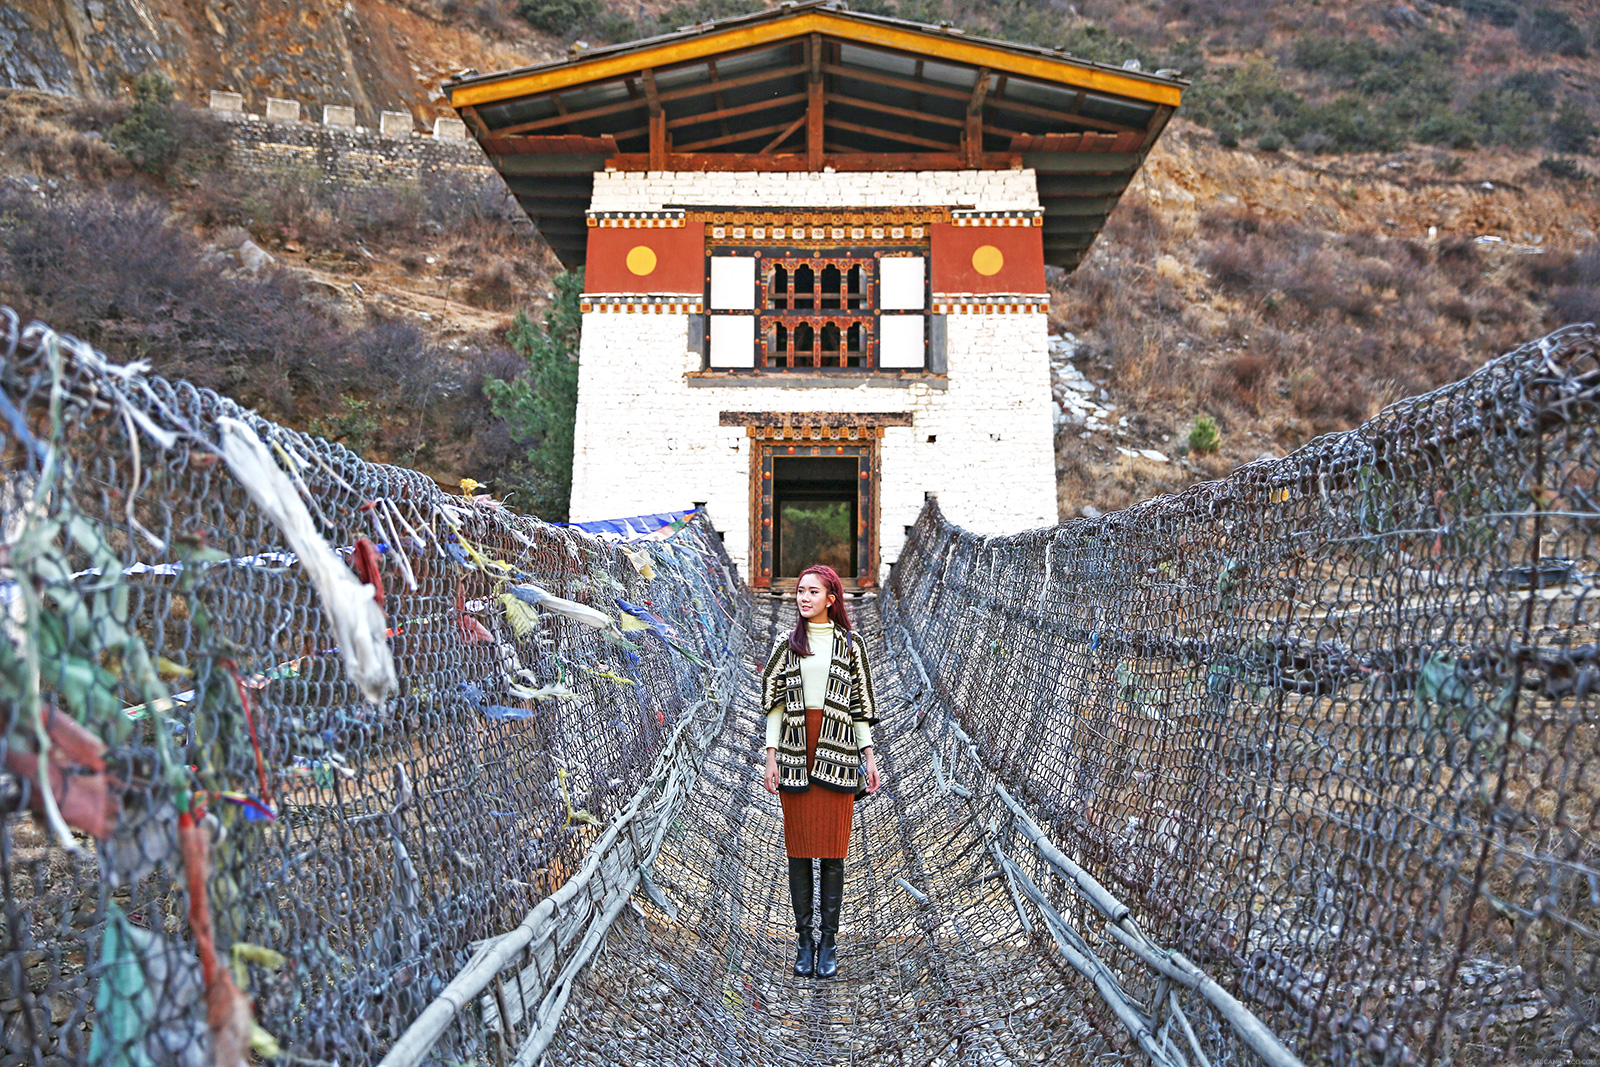 Iron Chain Bridge Bhutan - www.itscamilleco.com